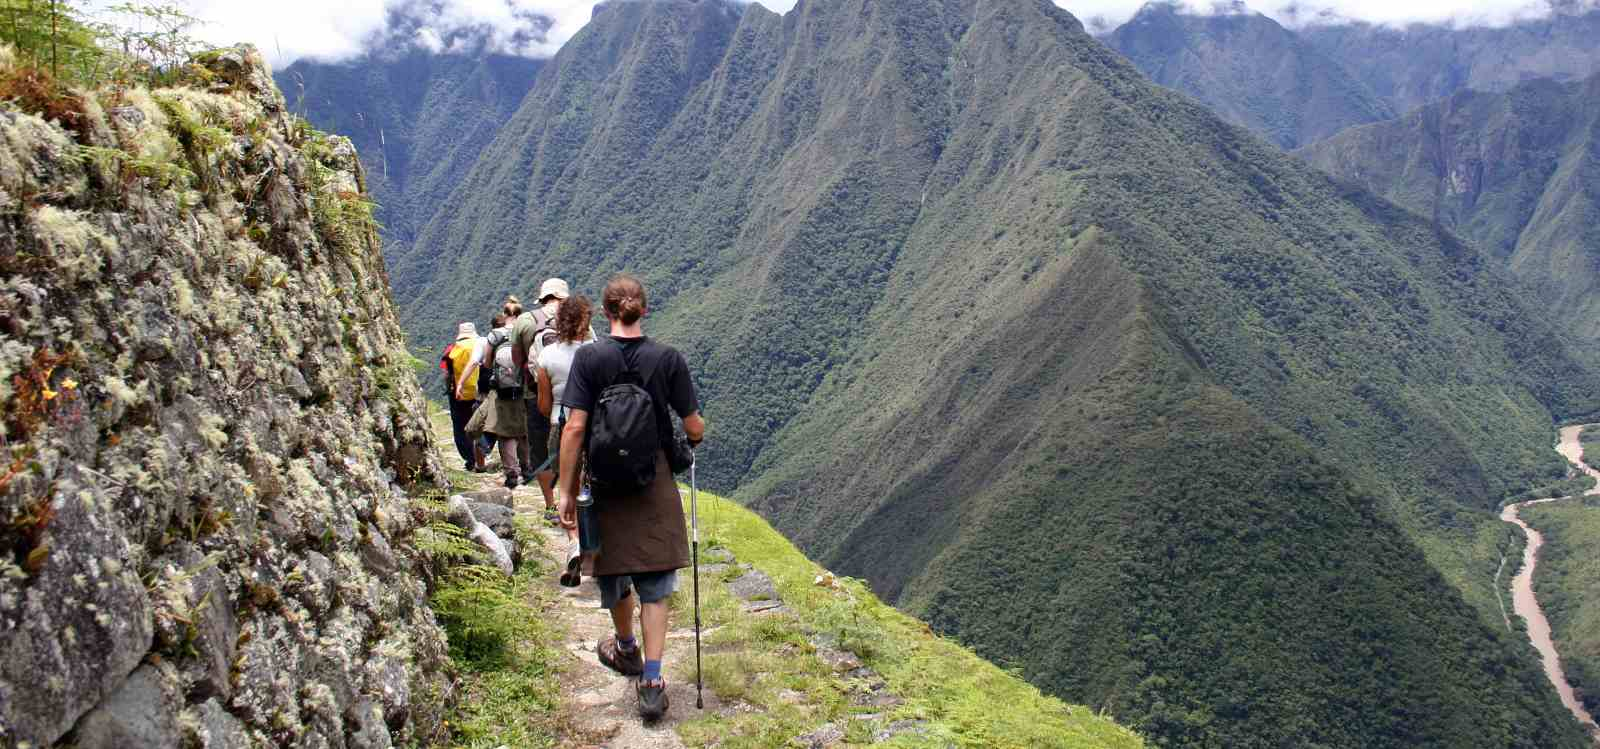 The Inca Trail: Am I Fit Enough?